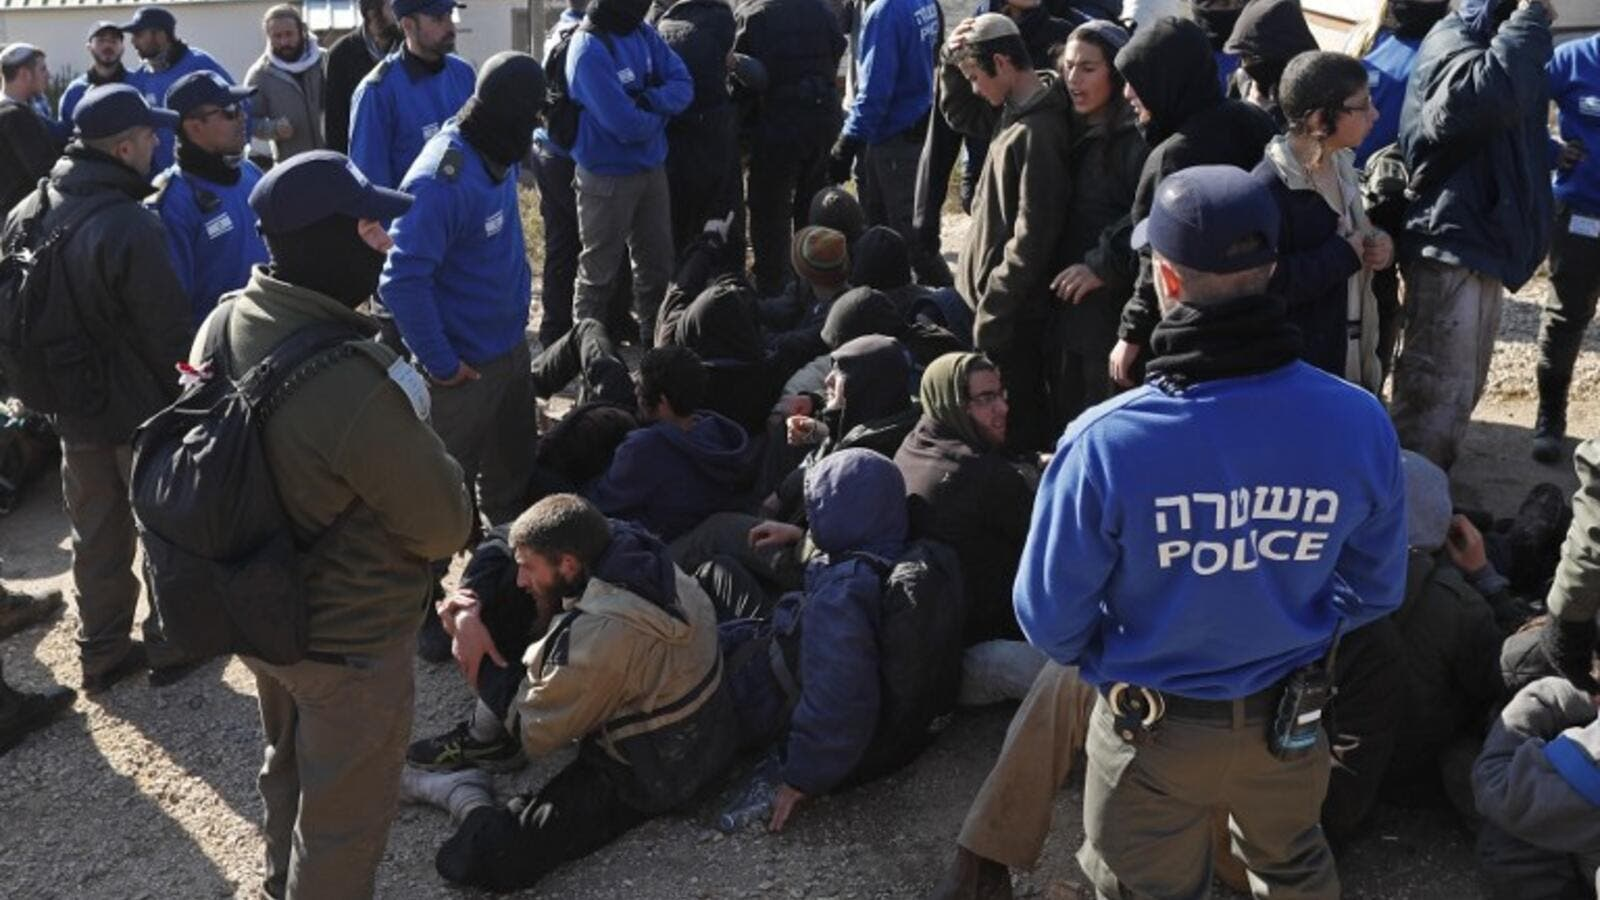 Israeli police guard Israeli settlers on the second day of an Israeli police operation to evict the hardline occupants and their supporters from the West Bank settler outpost of Amona on February 2, 2017. (AFP/Thomas Coex)